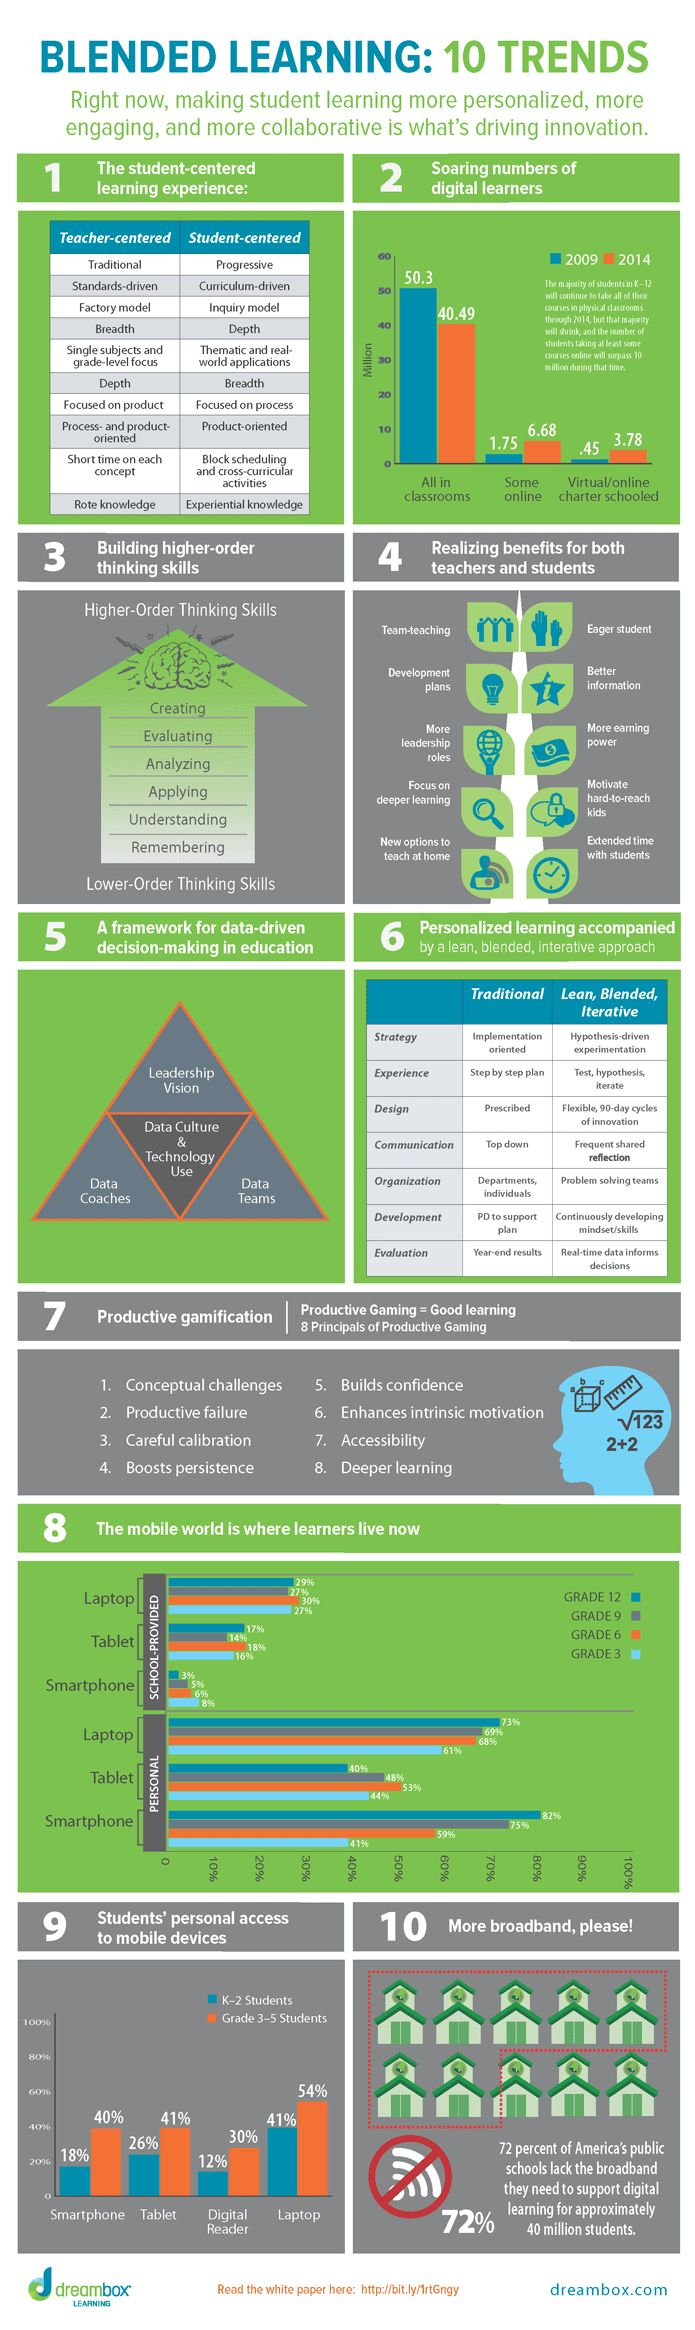 Blended Learning: 10 Trends #elearning #edtech